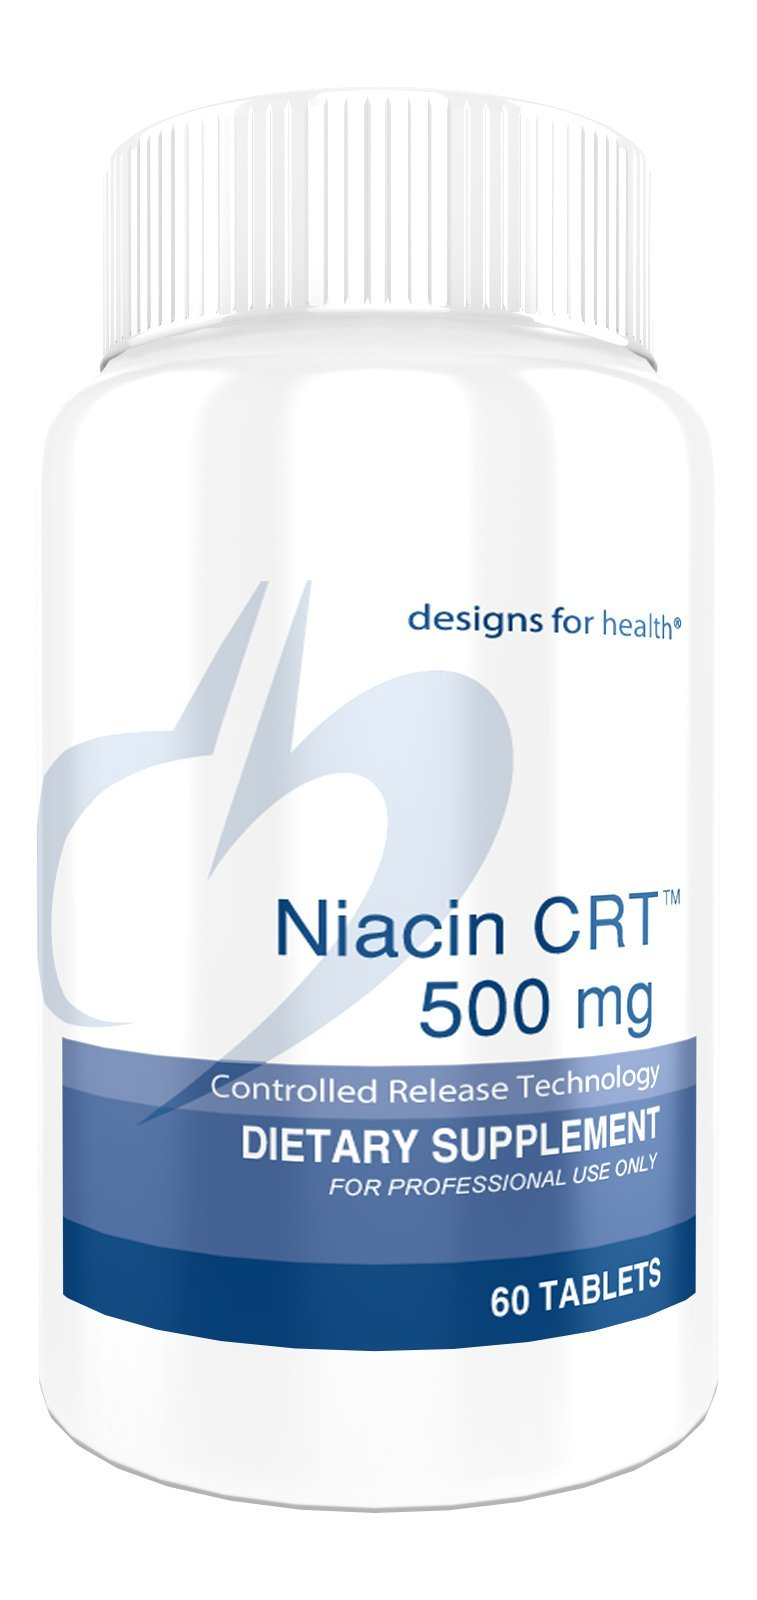 Designs for Health 500mg Niacin Flush-Free - Niacin CRT, Slow Timed Release Tablets (60 Tablets)